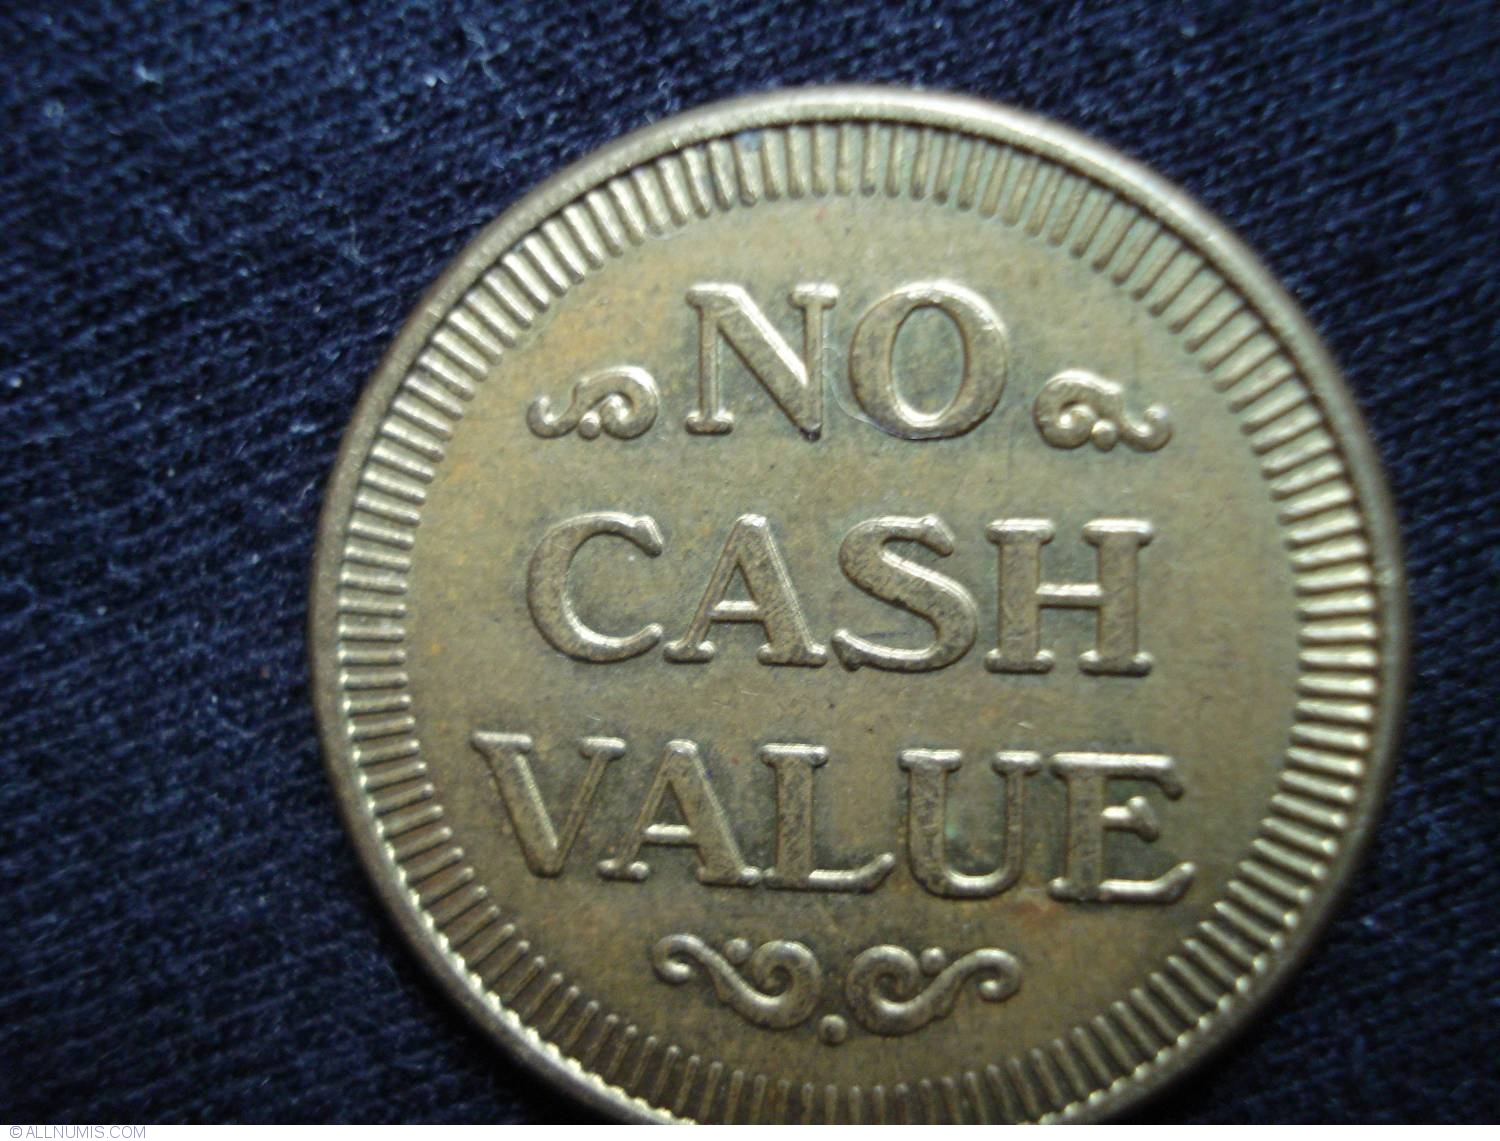 No Cash Value Laser One Business Tokens United States